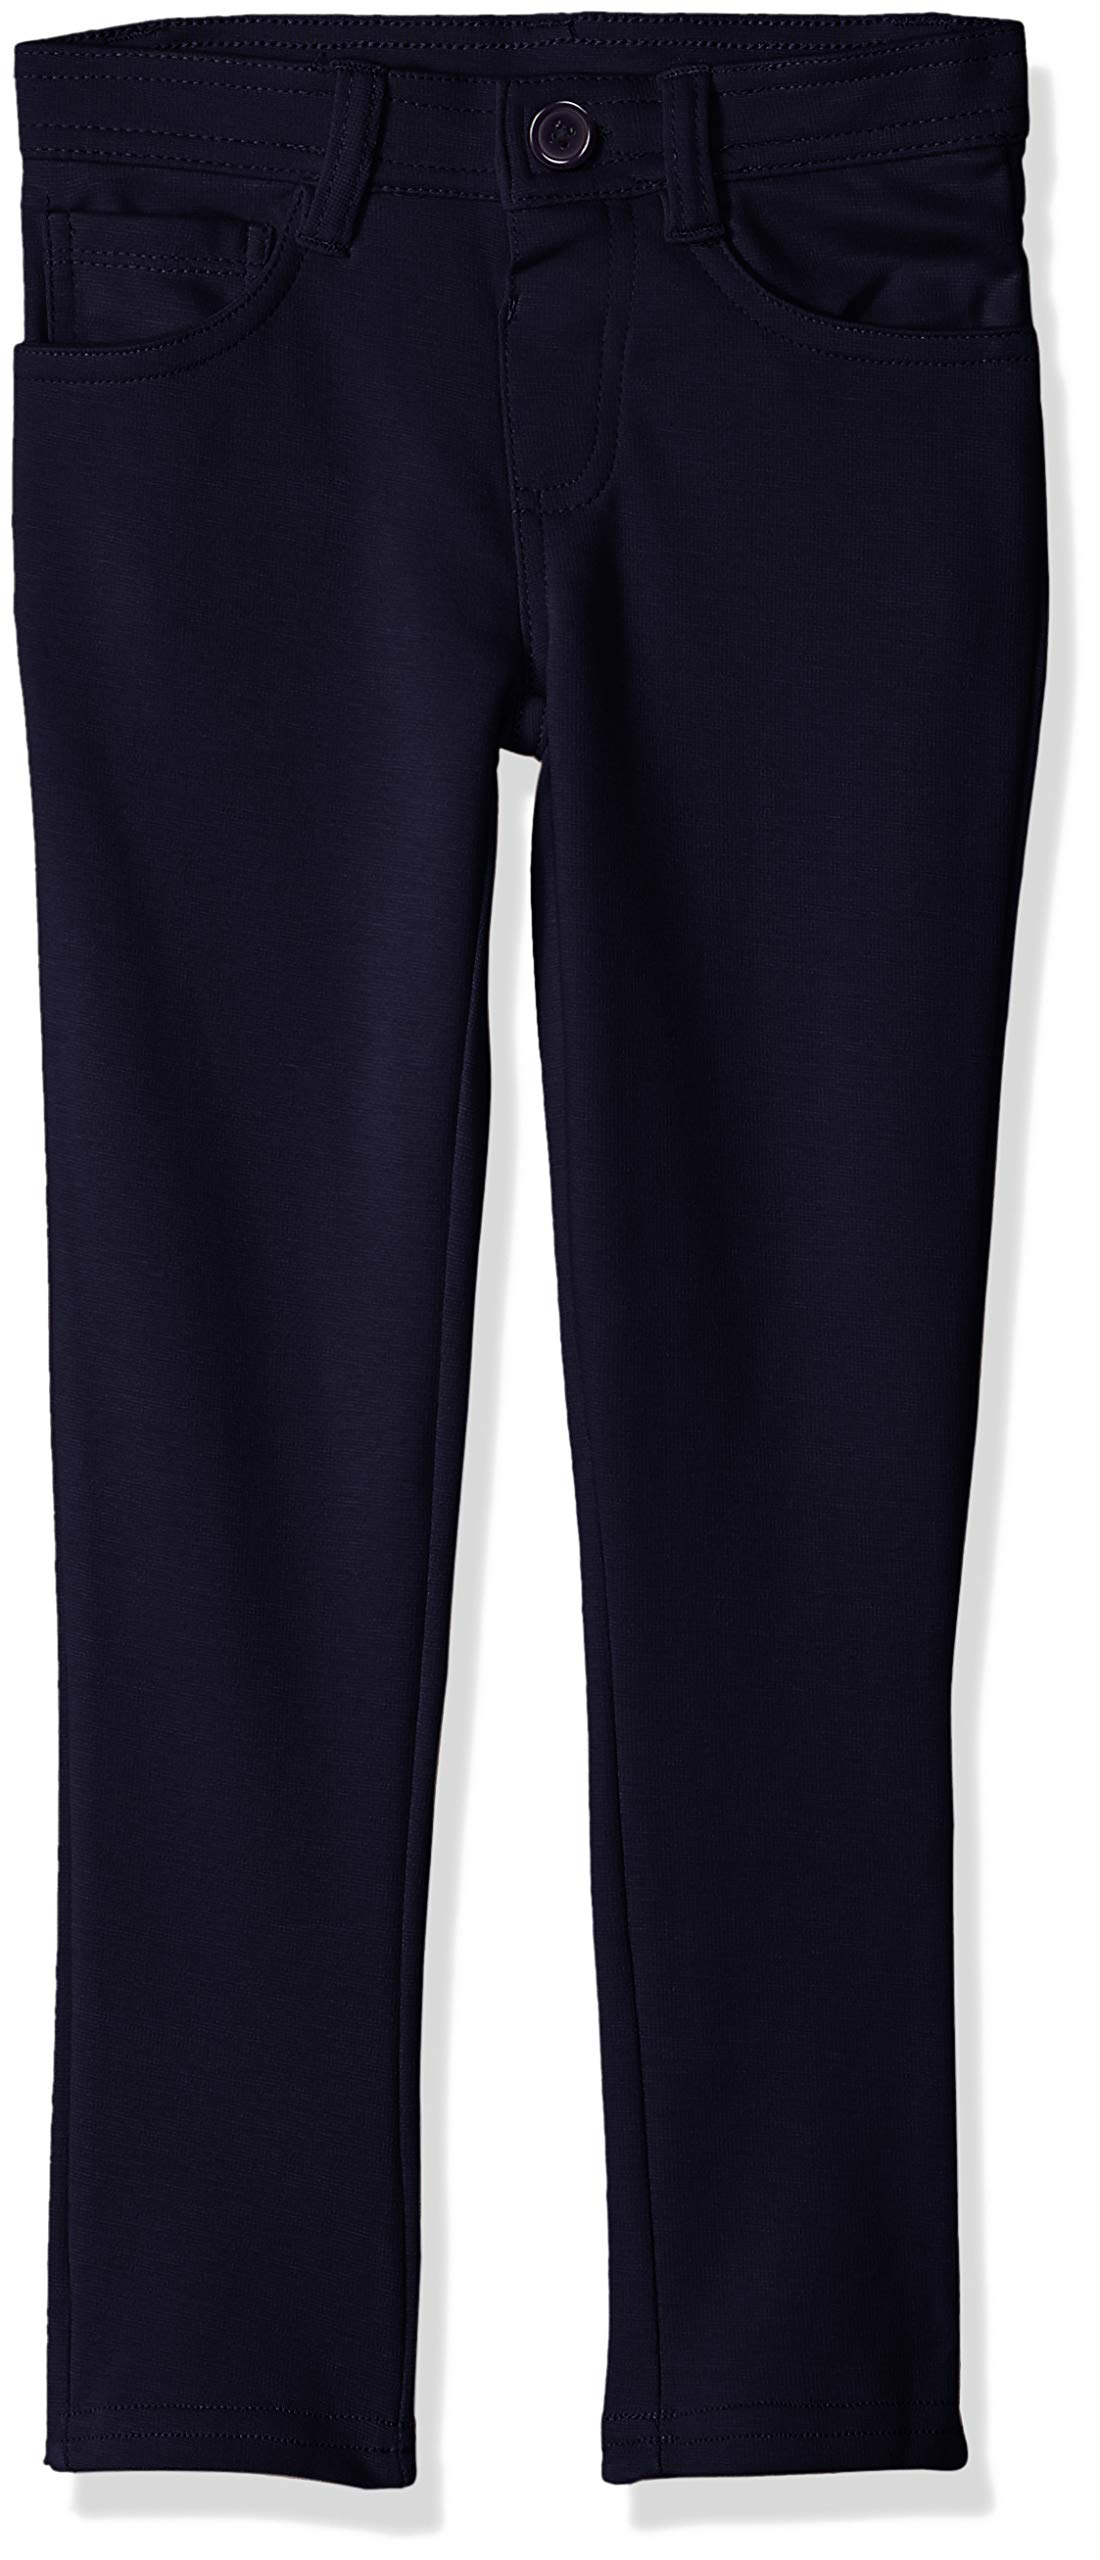 U.S. Polo Assn. Girls' Little Pull-On Ponte Knit Skinny Fit Pant, Navy, 4 by U.S. Polo Assn.